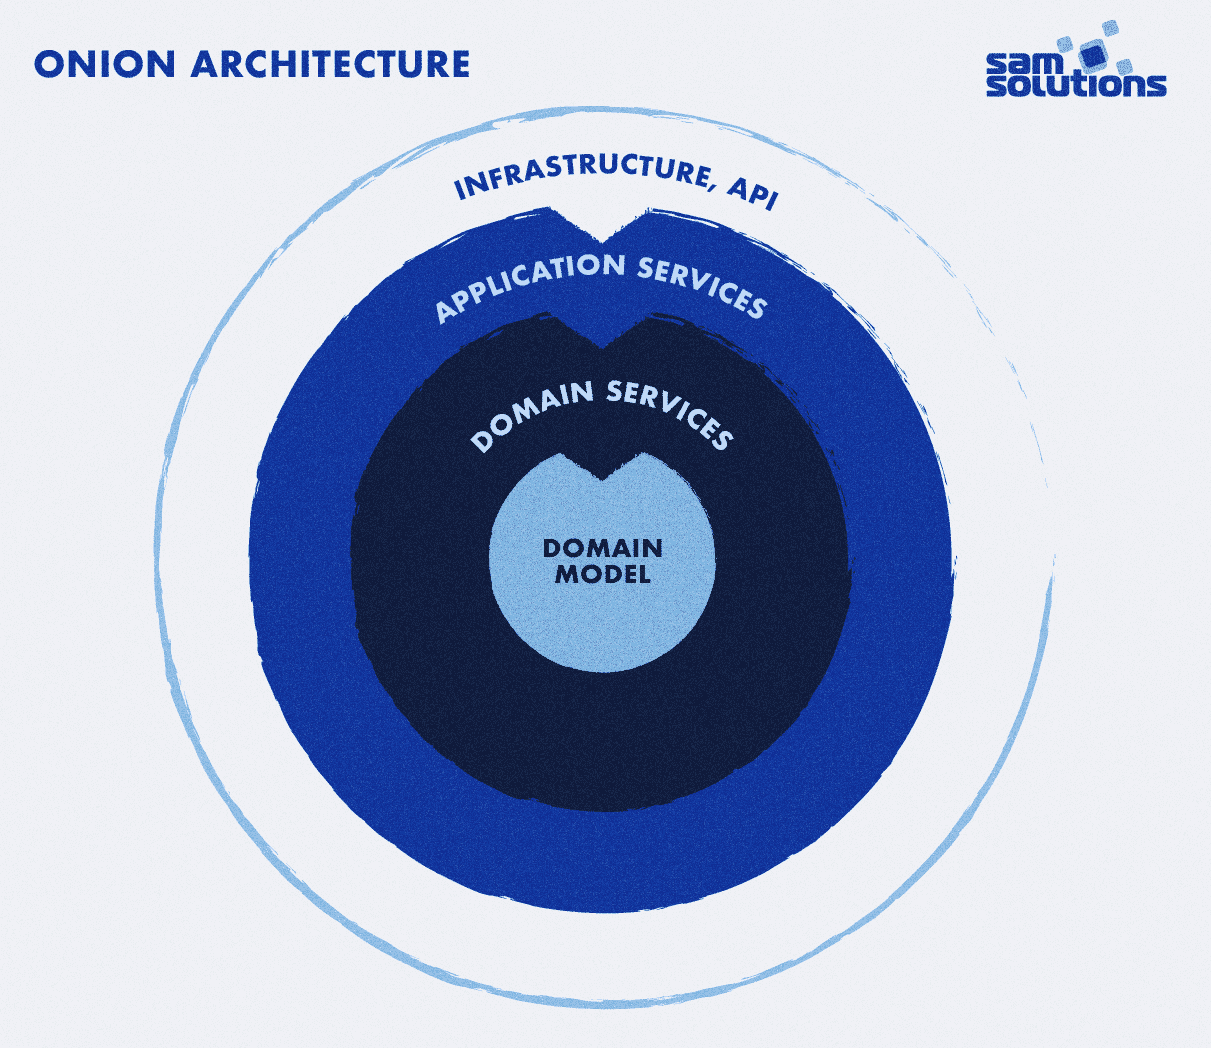 Using-onion-architecture-to-build-microservices